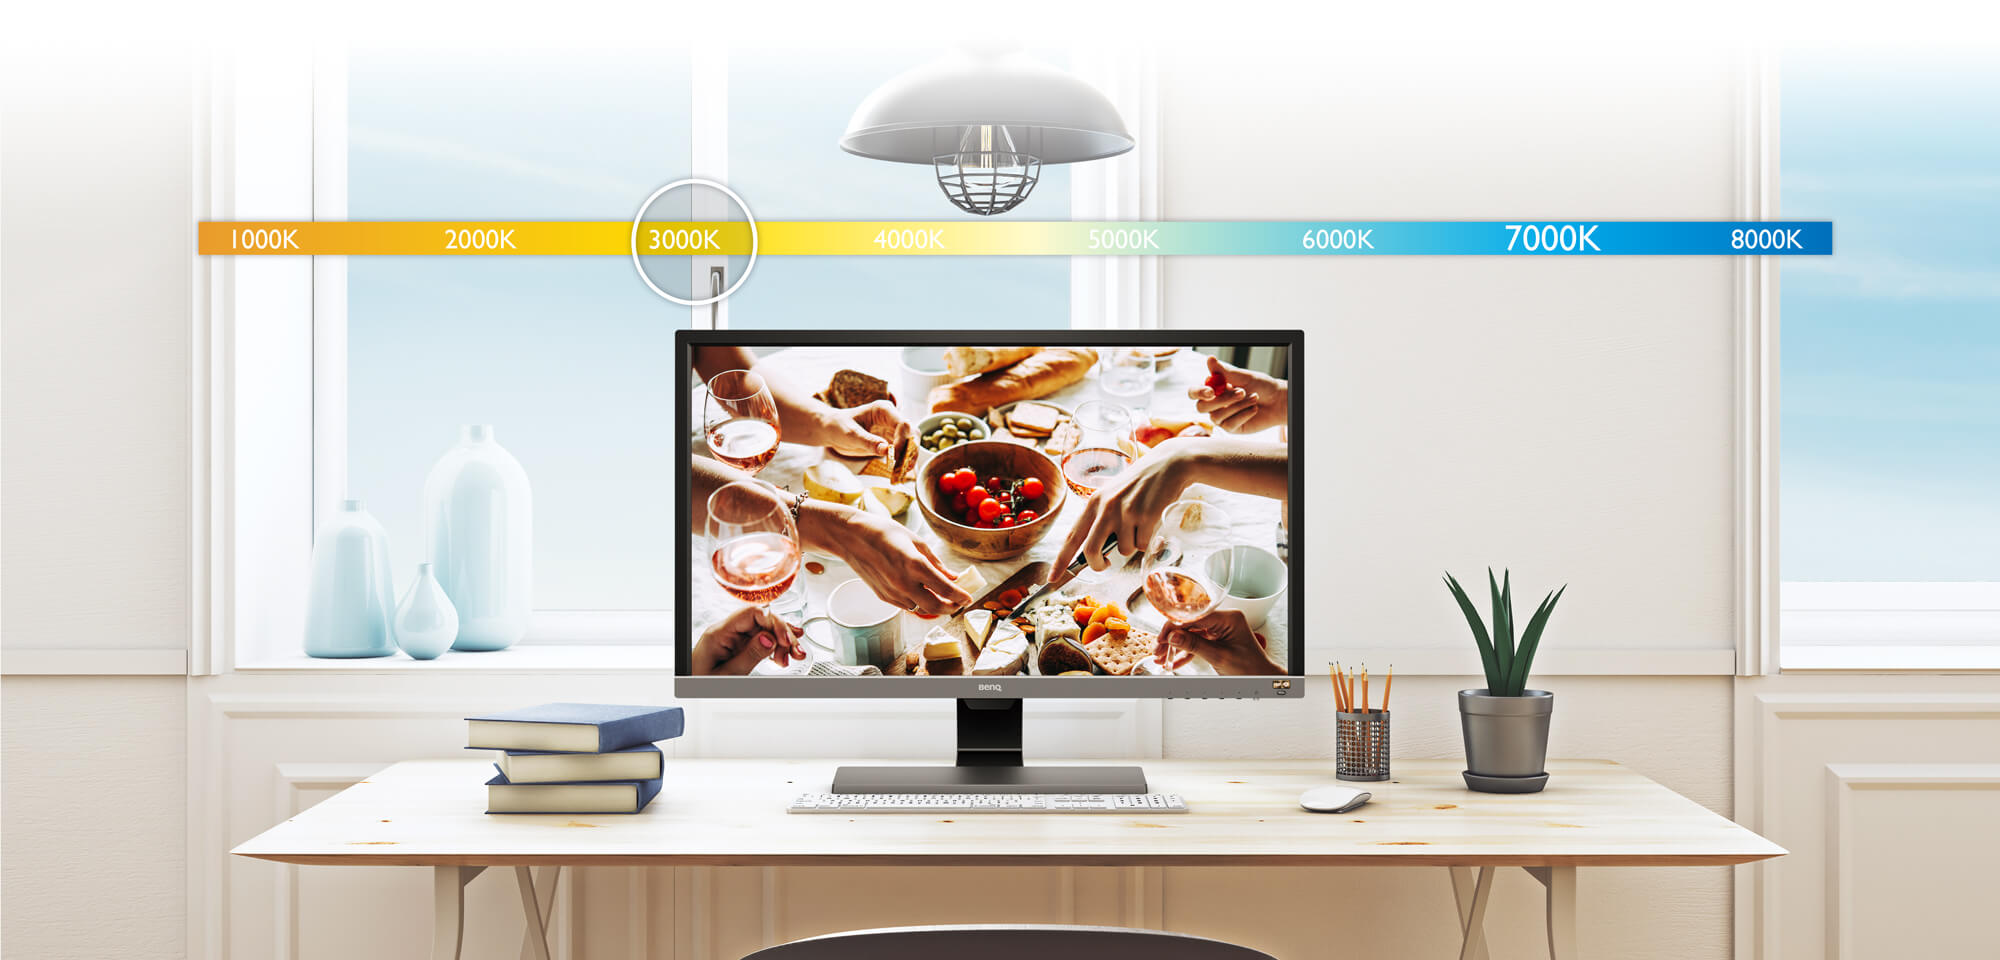 Brightness Intelligence Plus, the ambient light, adjustable monitor brightness and color temperature